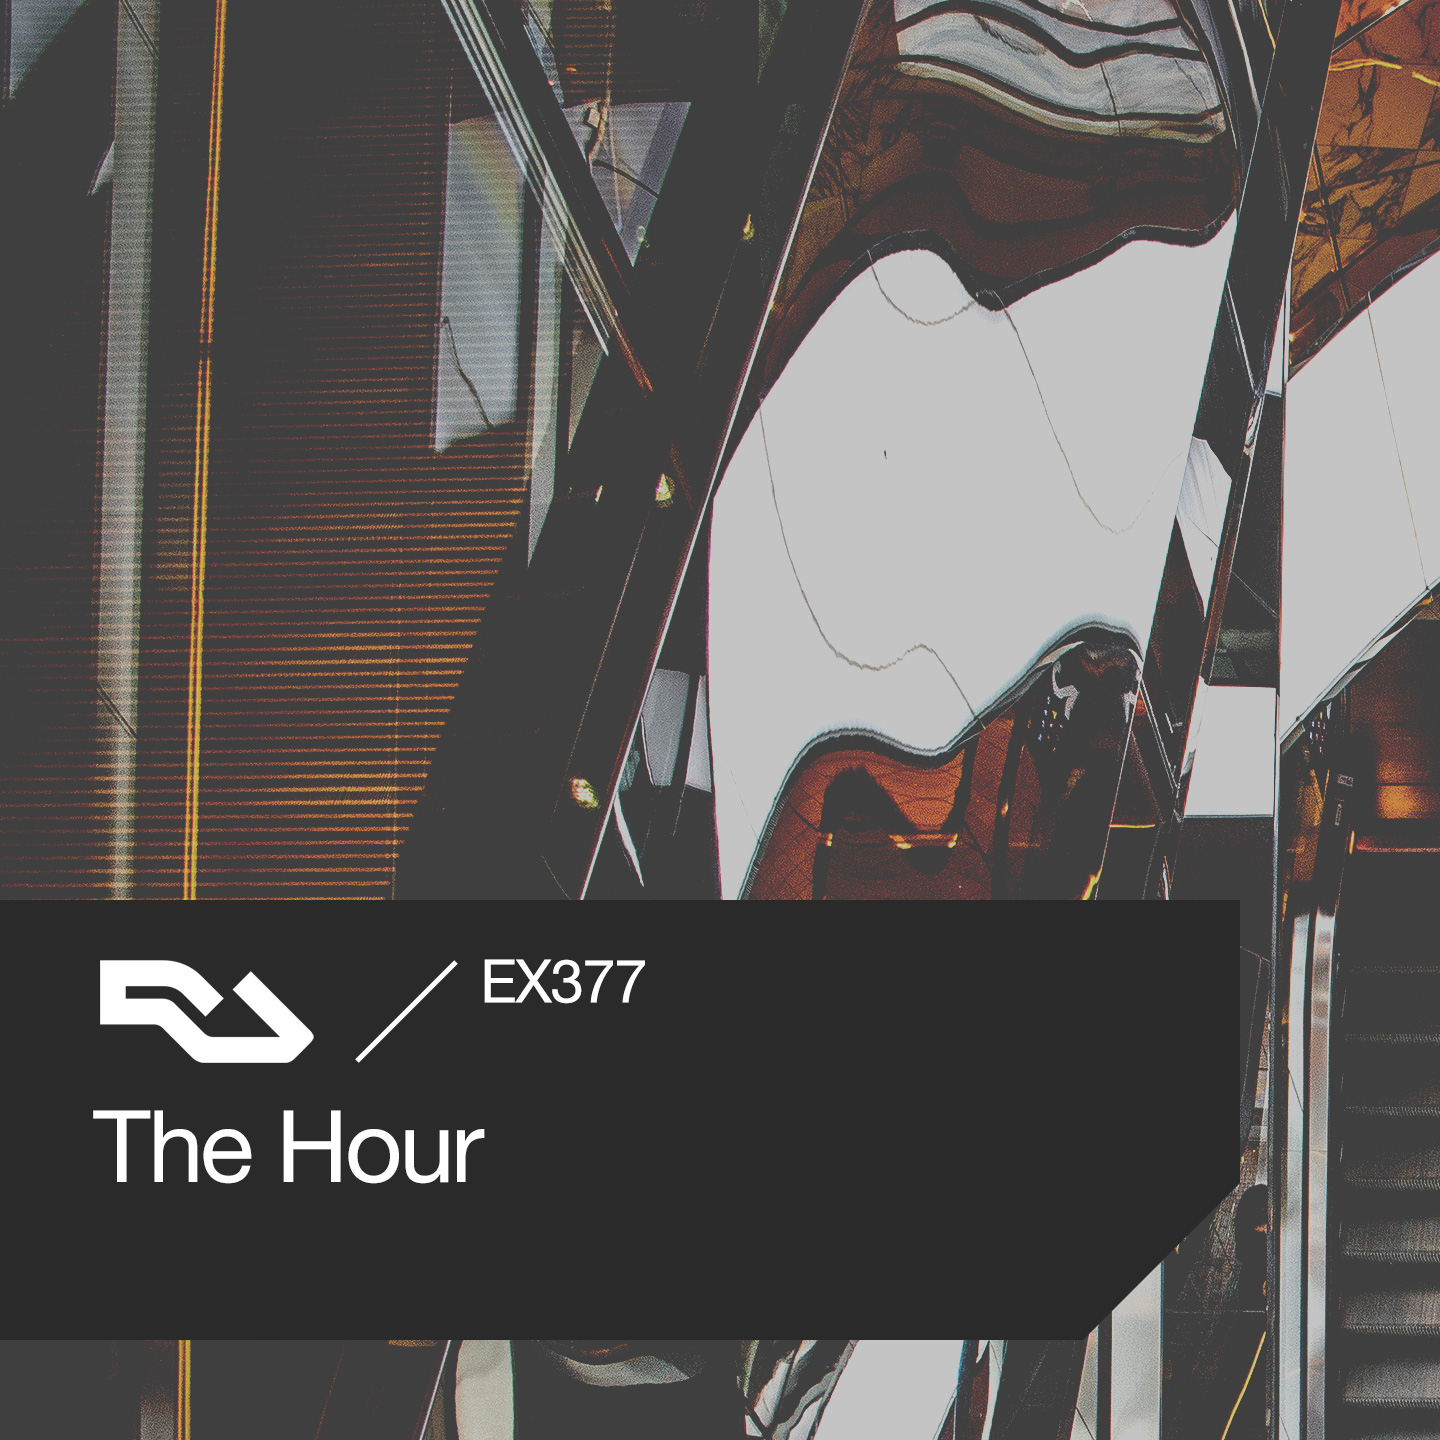 EX.377 The Hour: Psychology of raving, Sydney, negative reviews